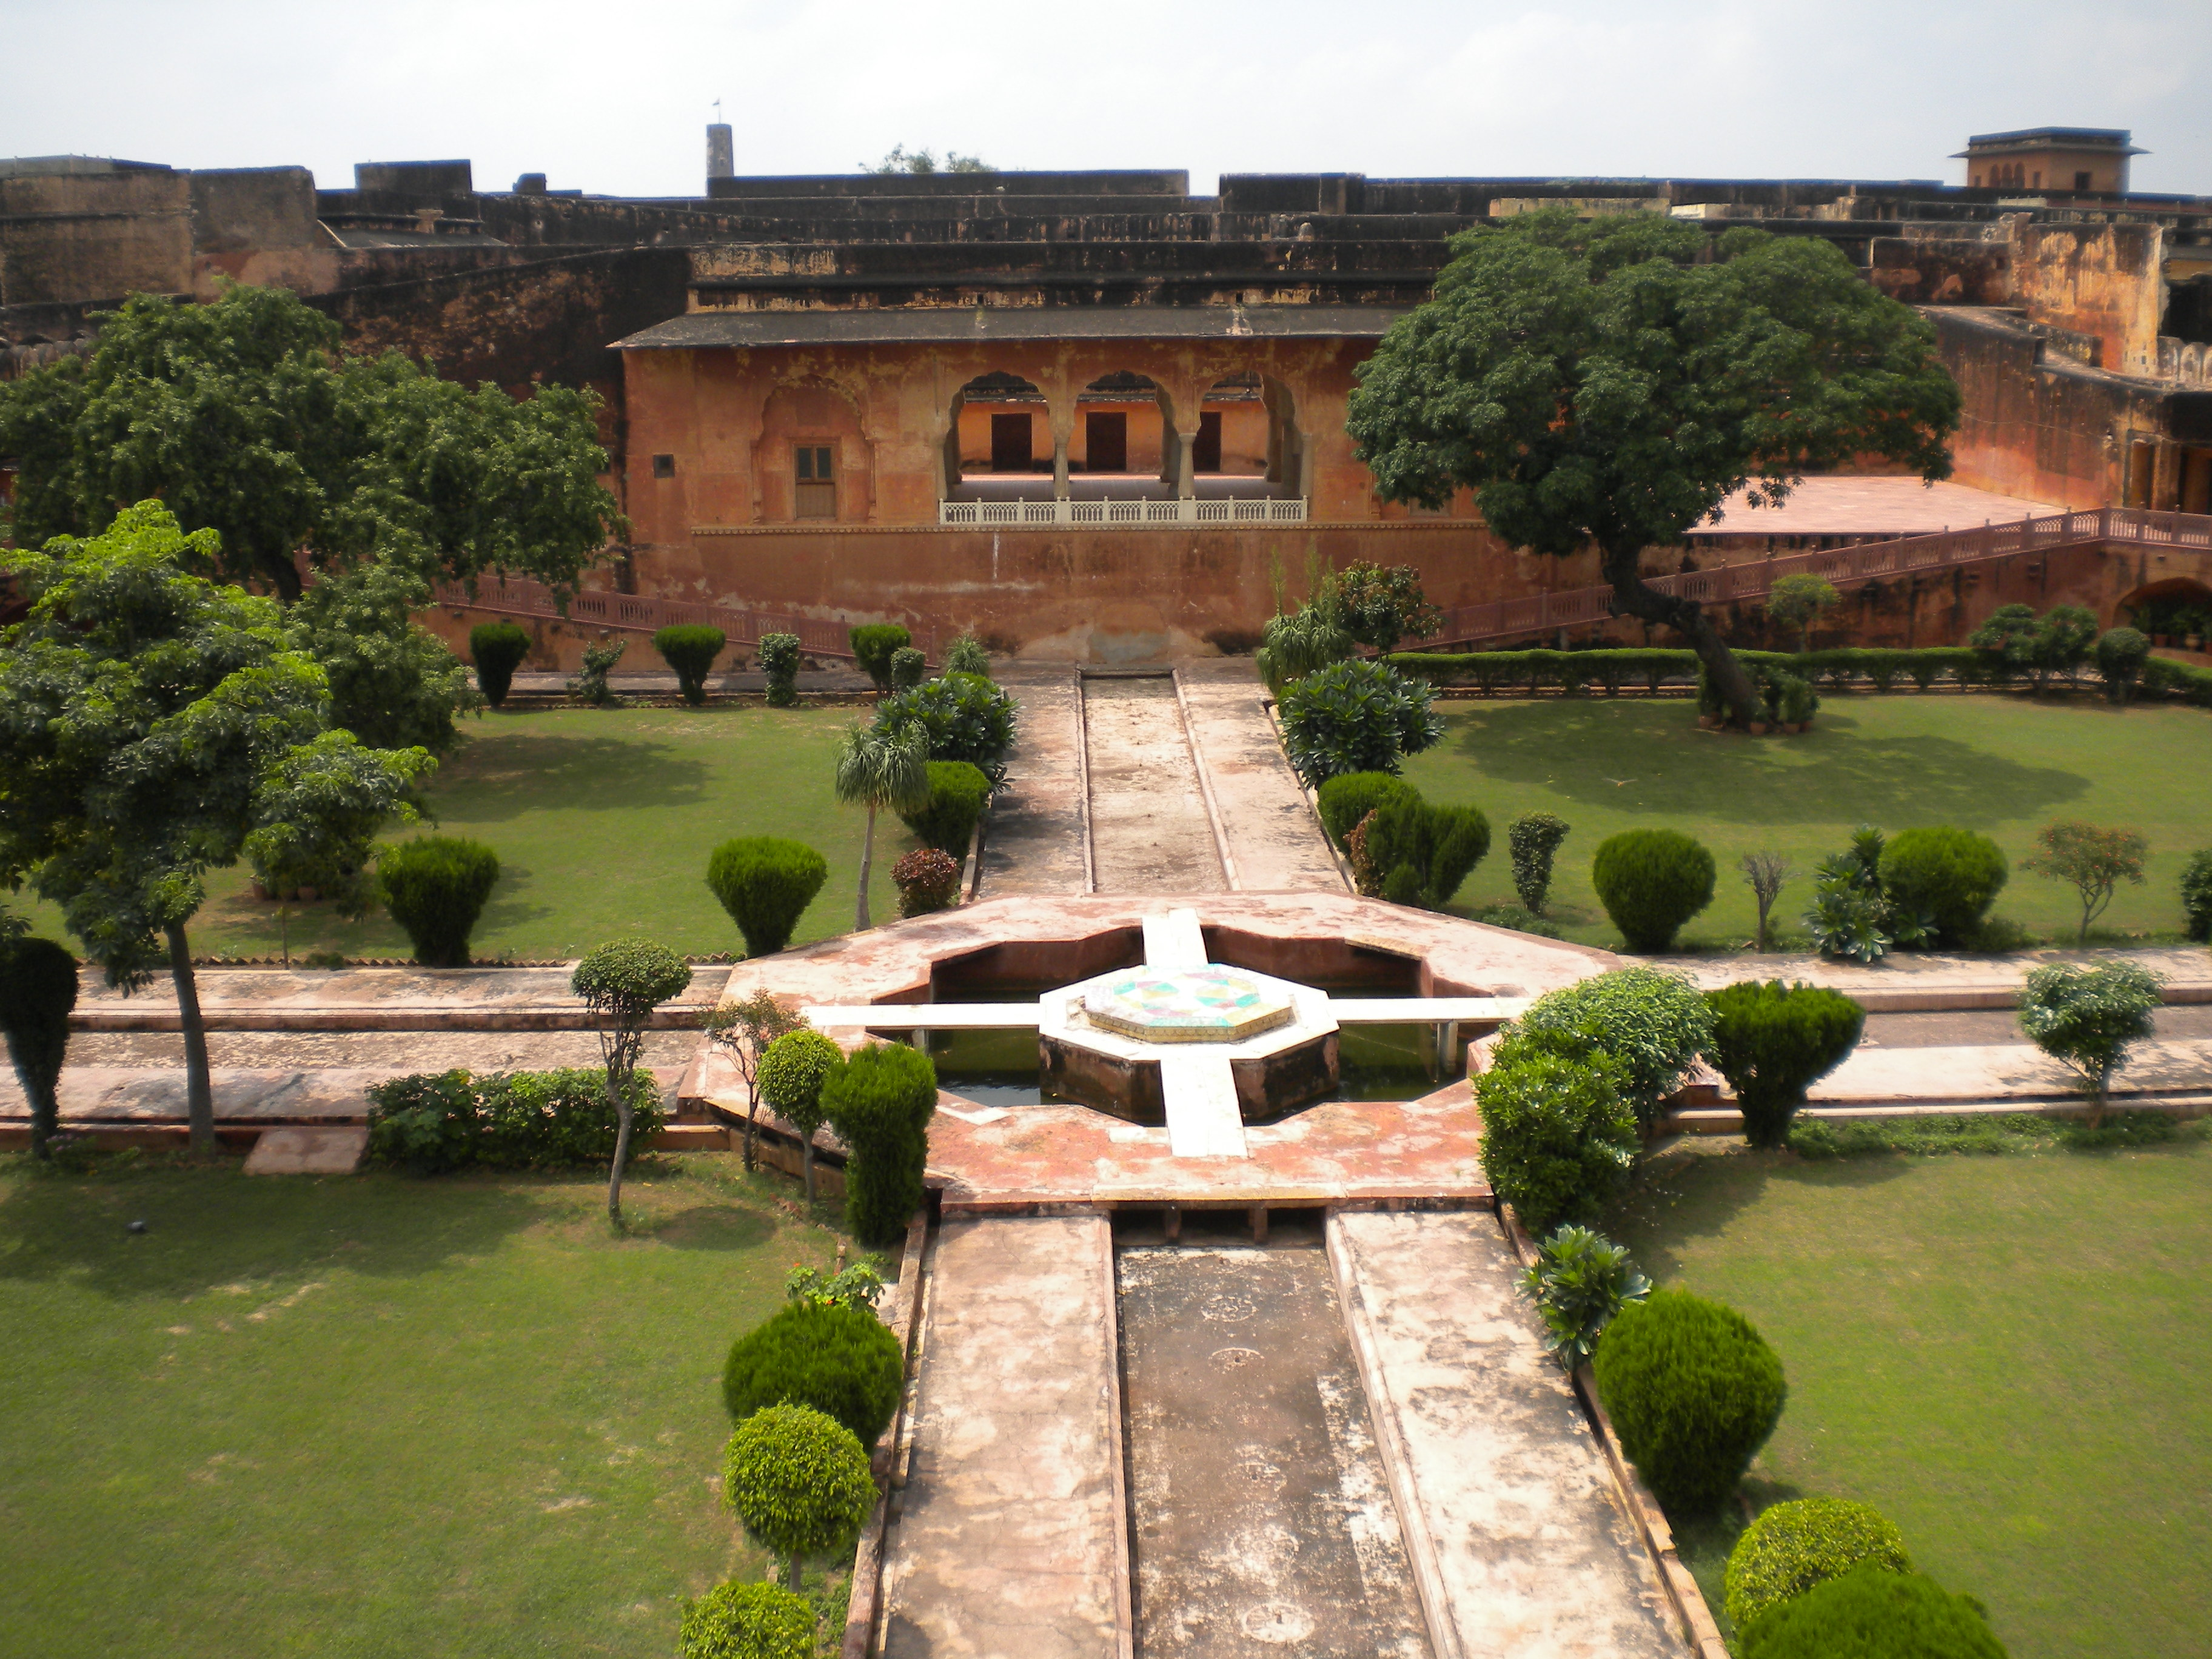 File:Jaigarh Fort - Char bagh 2.jpg - Wikimedia Commons